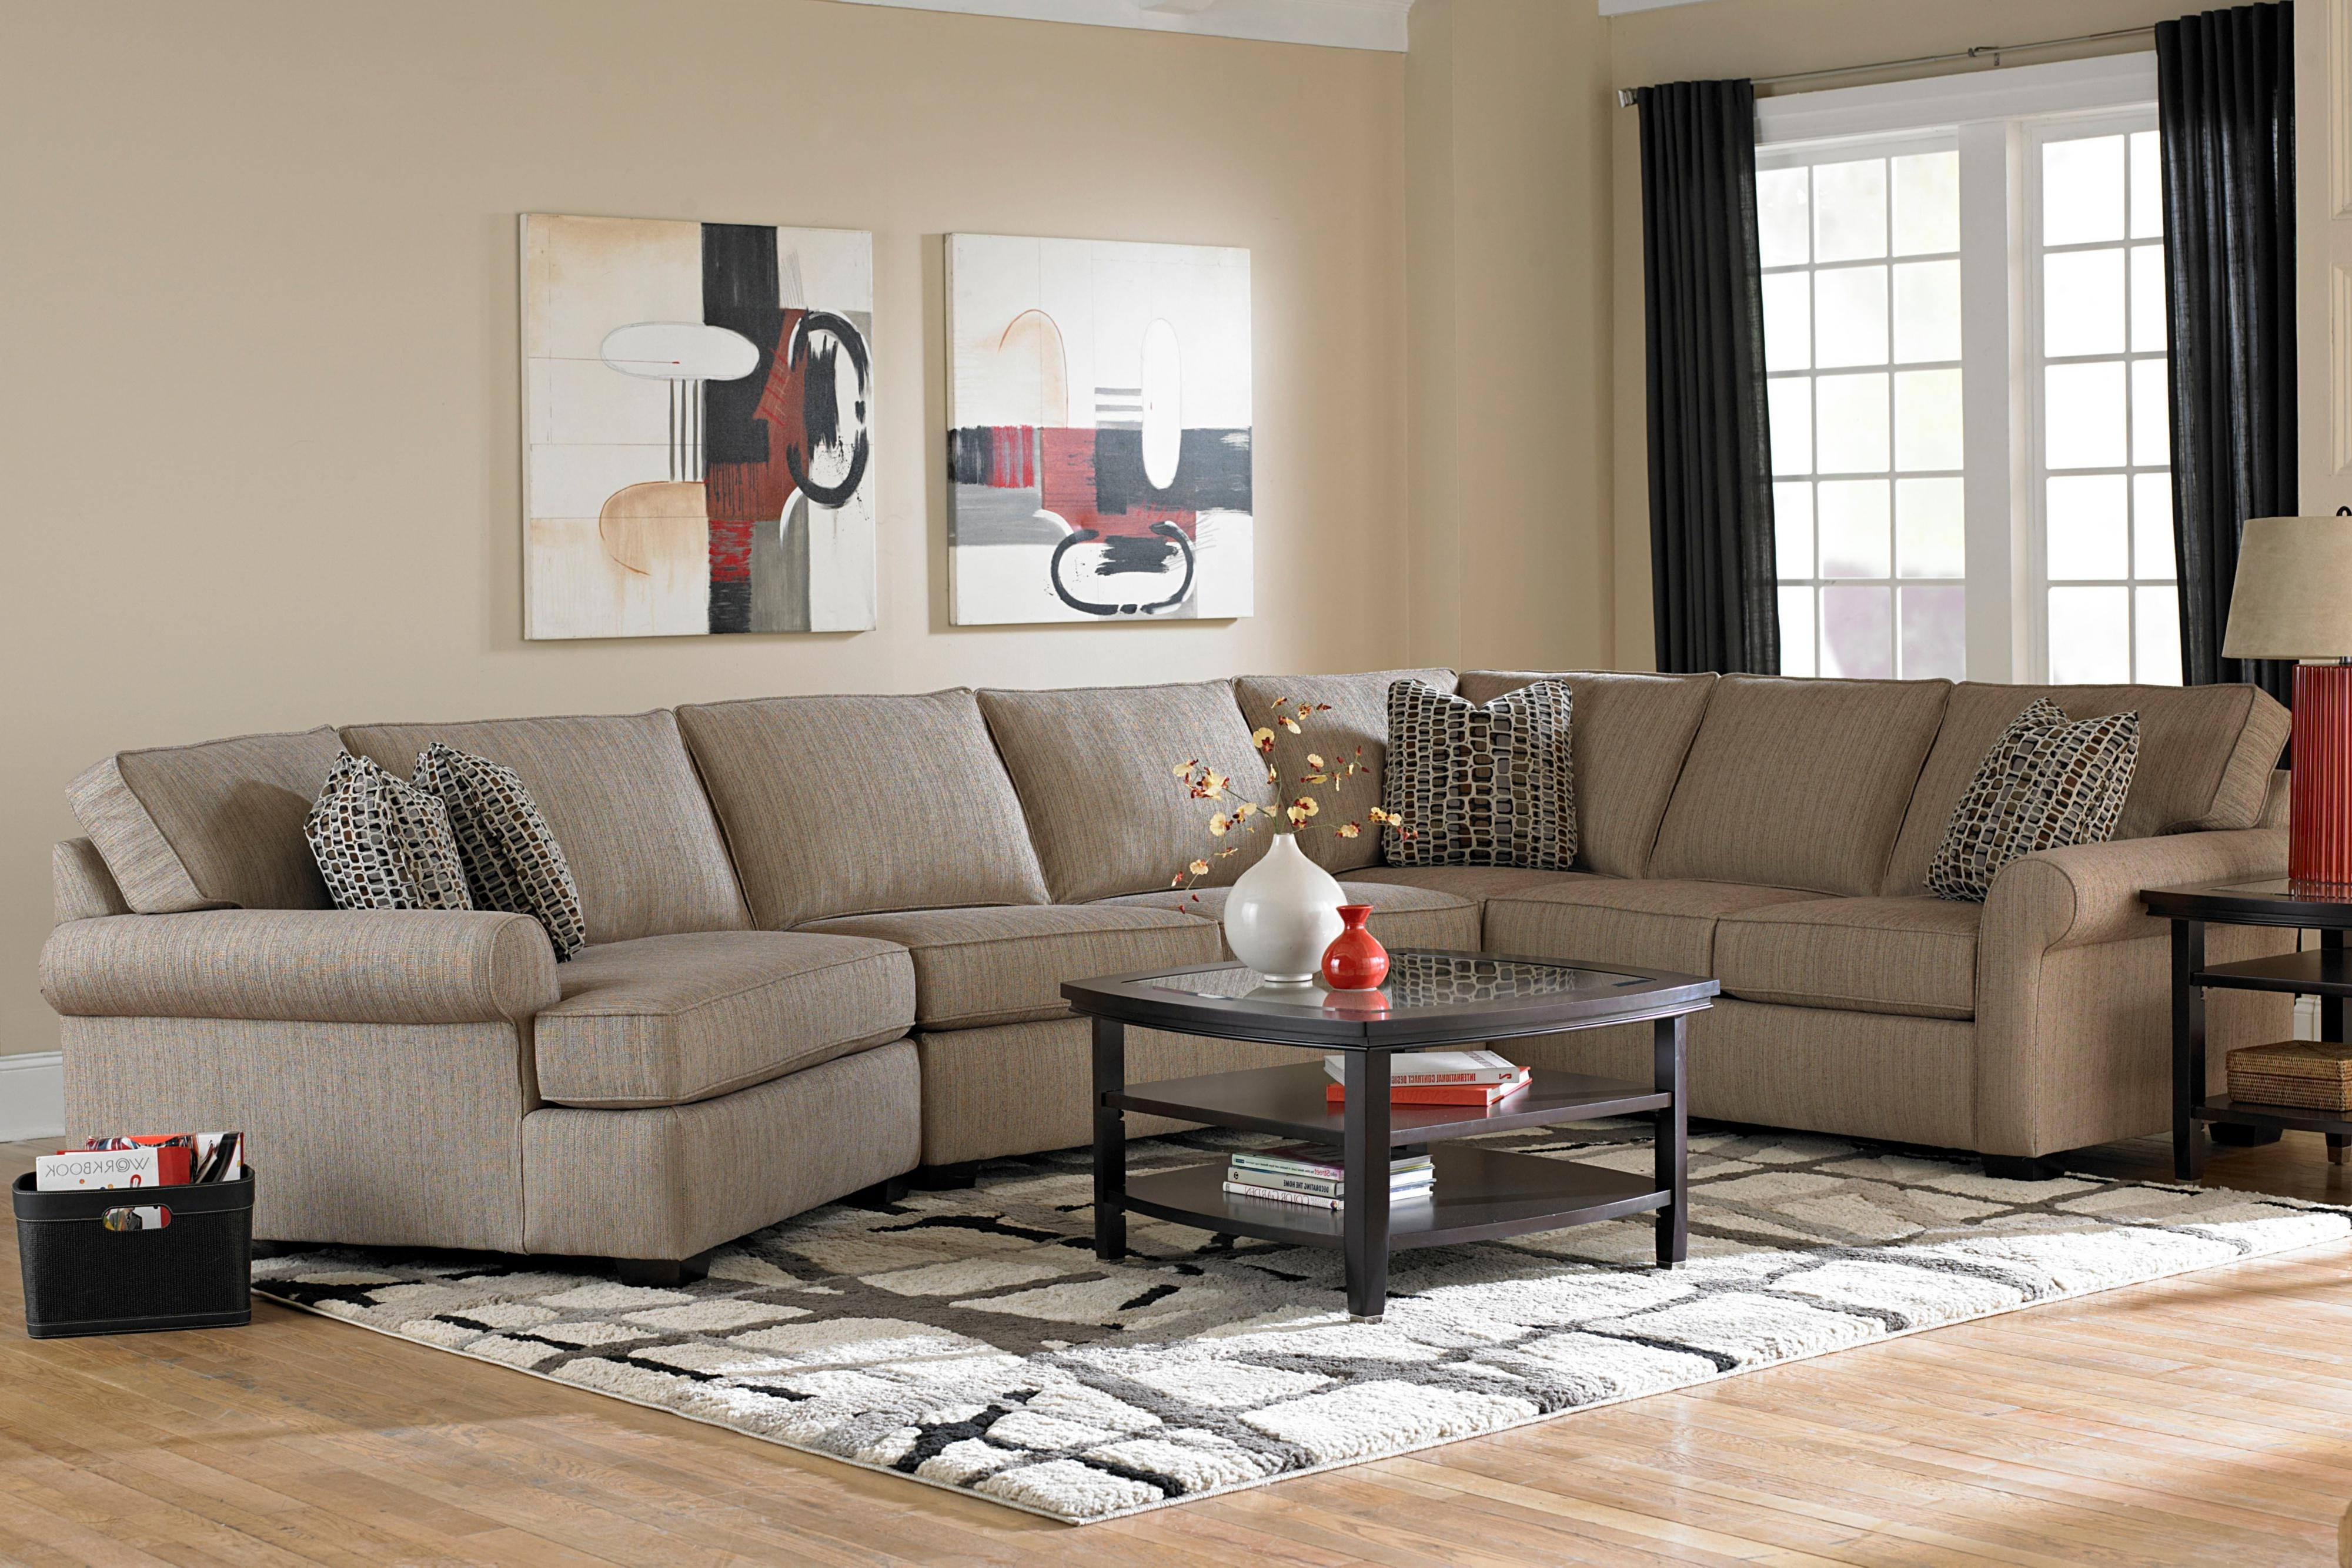 Lancaster Pa Sectional Sofas Within 2019 Broyhill Furniture Ethan Transitional Sectional Sofa With Right (View 3 of 20)